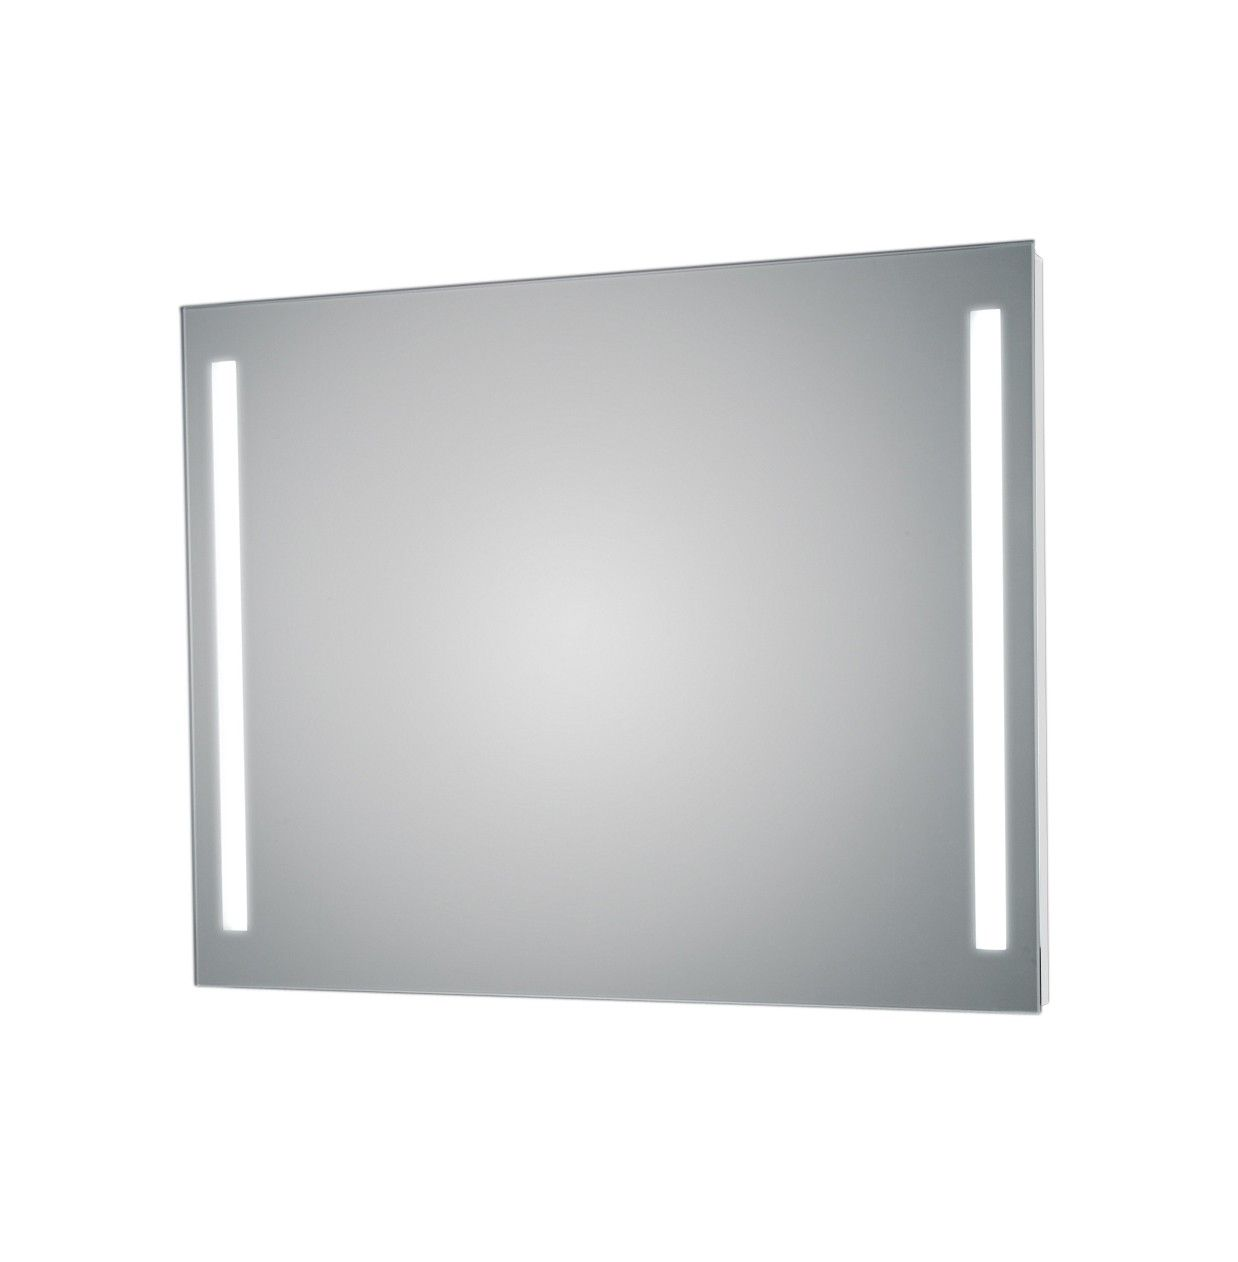 Exemplary Modern High End Luxurious Horizontal Bathroom Wall Mirror Made Of High  Quality Glass With Side LED Lights.